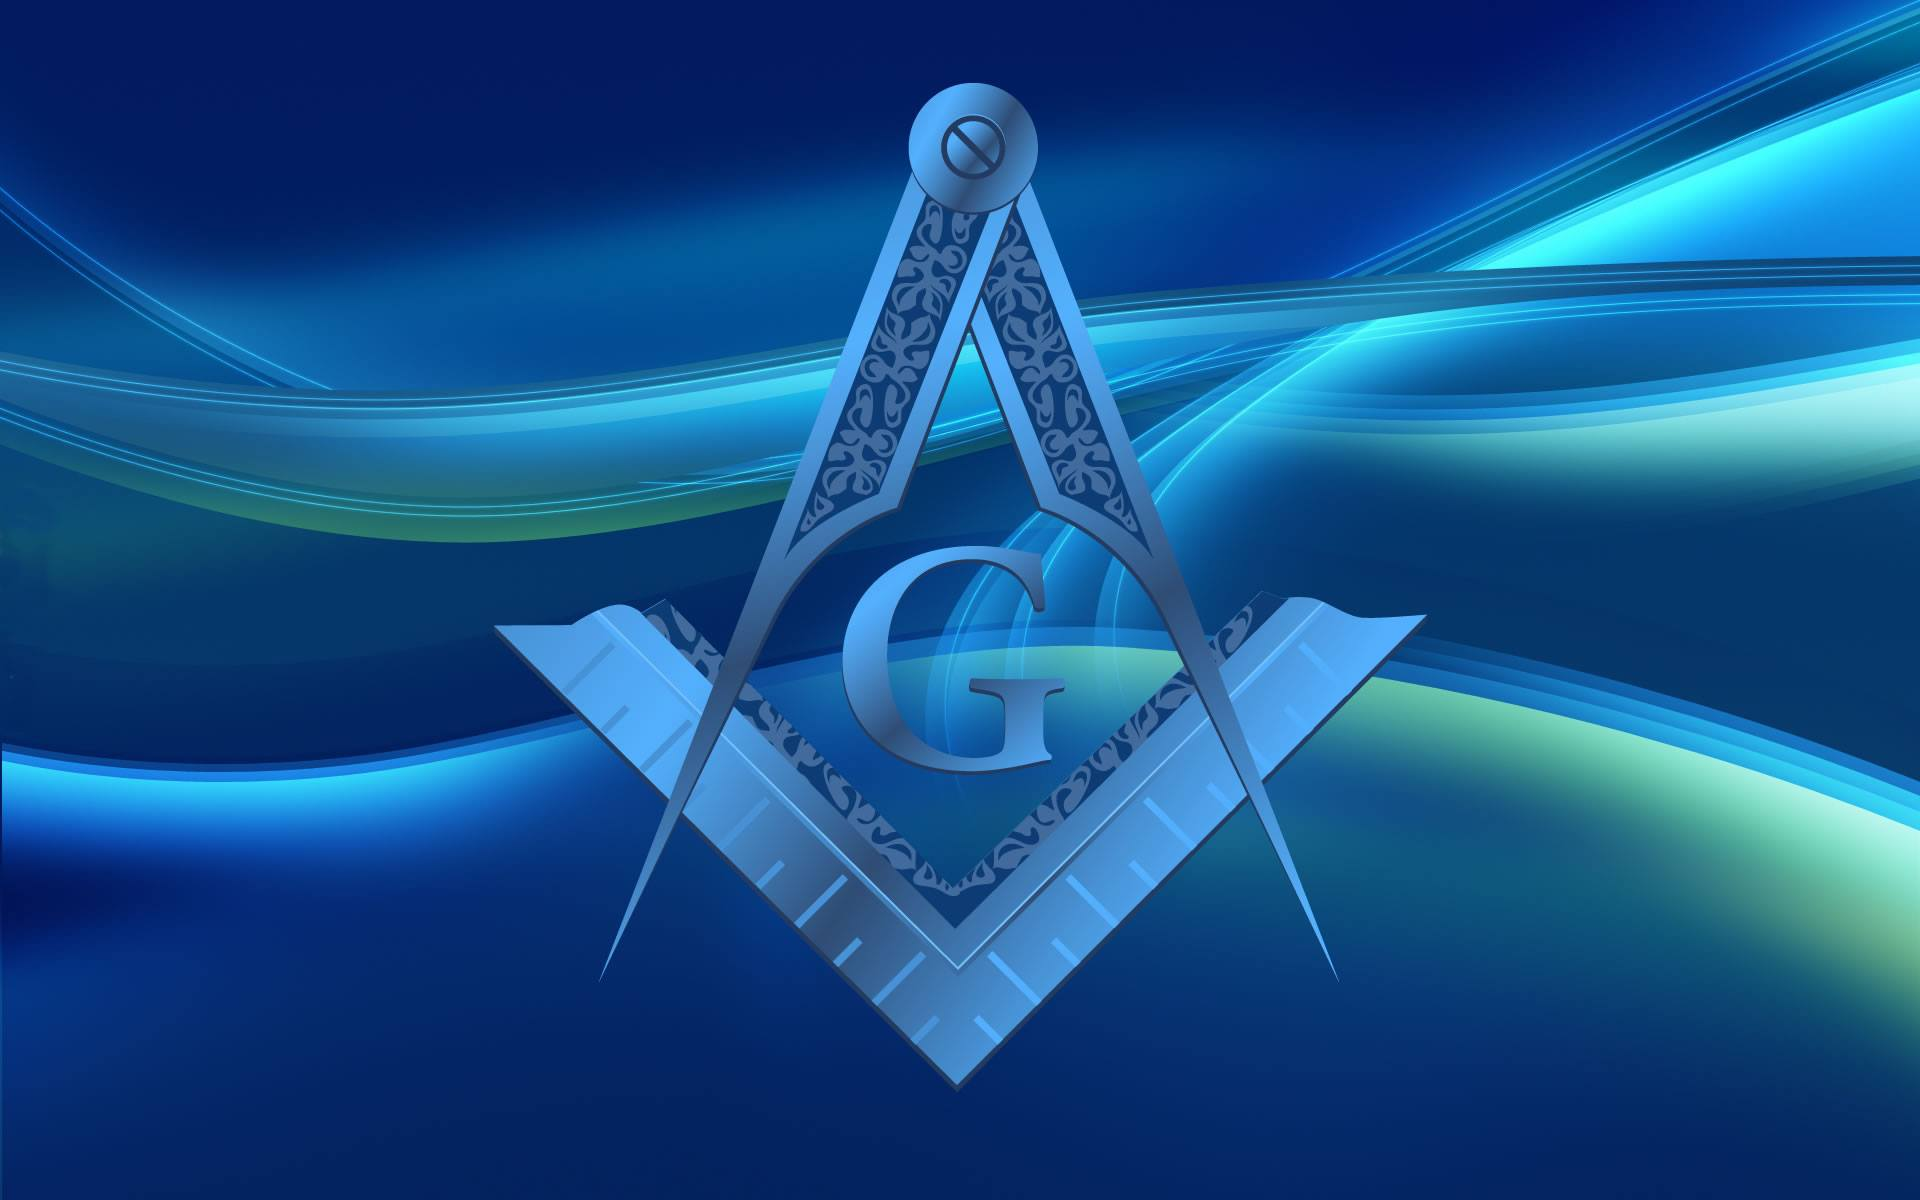 Goliad Masonic Lodge